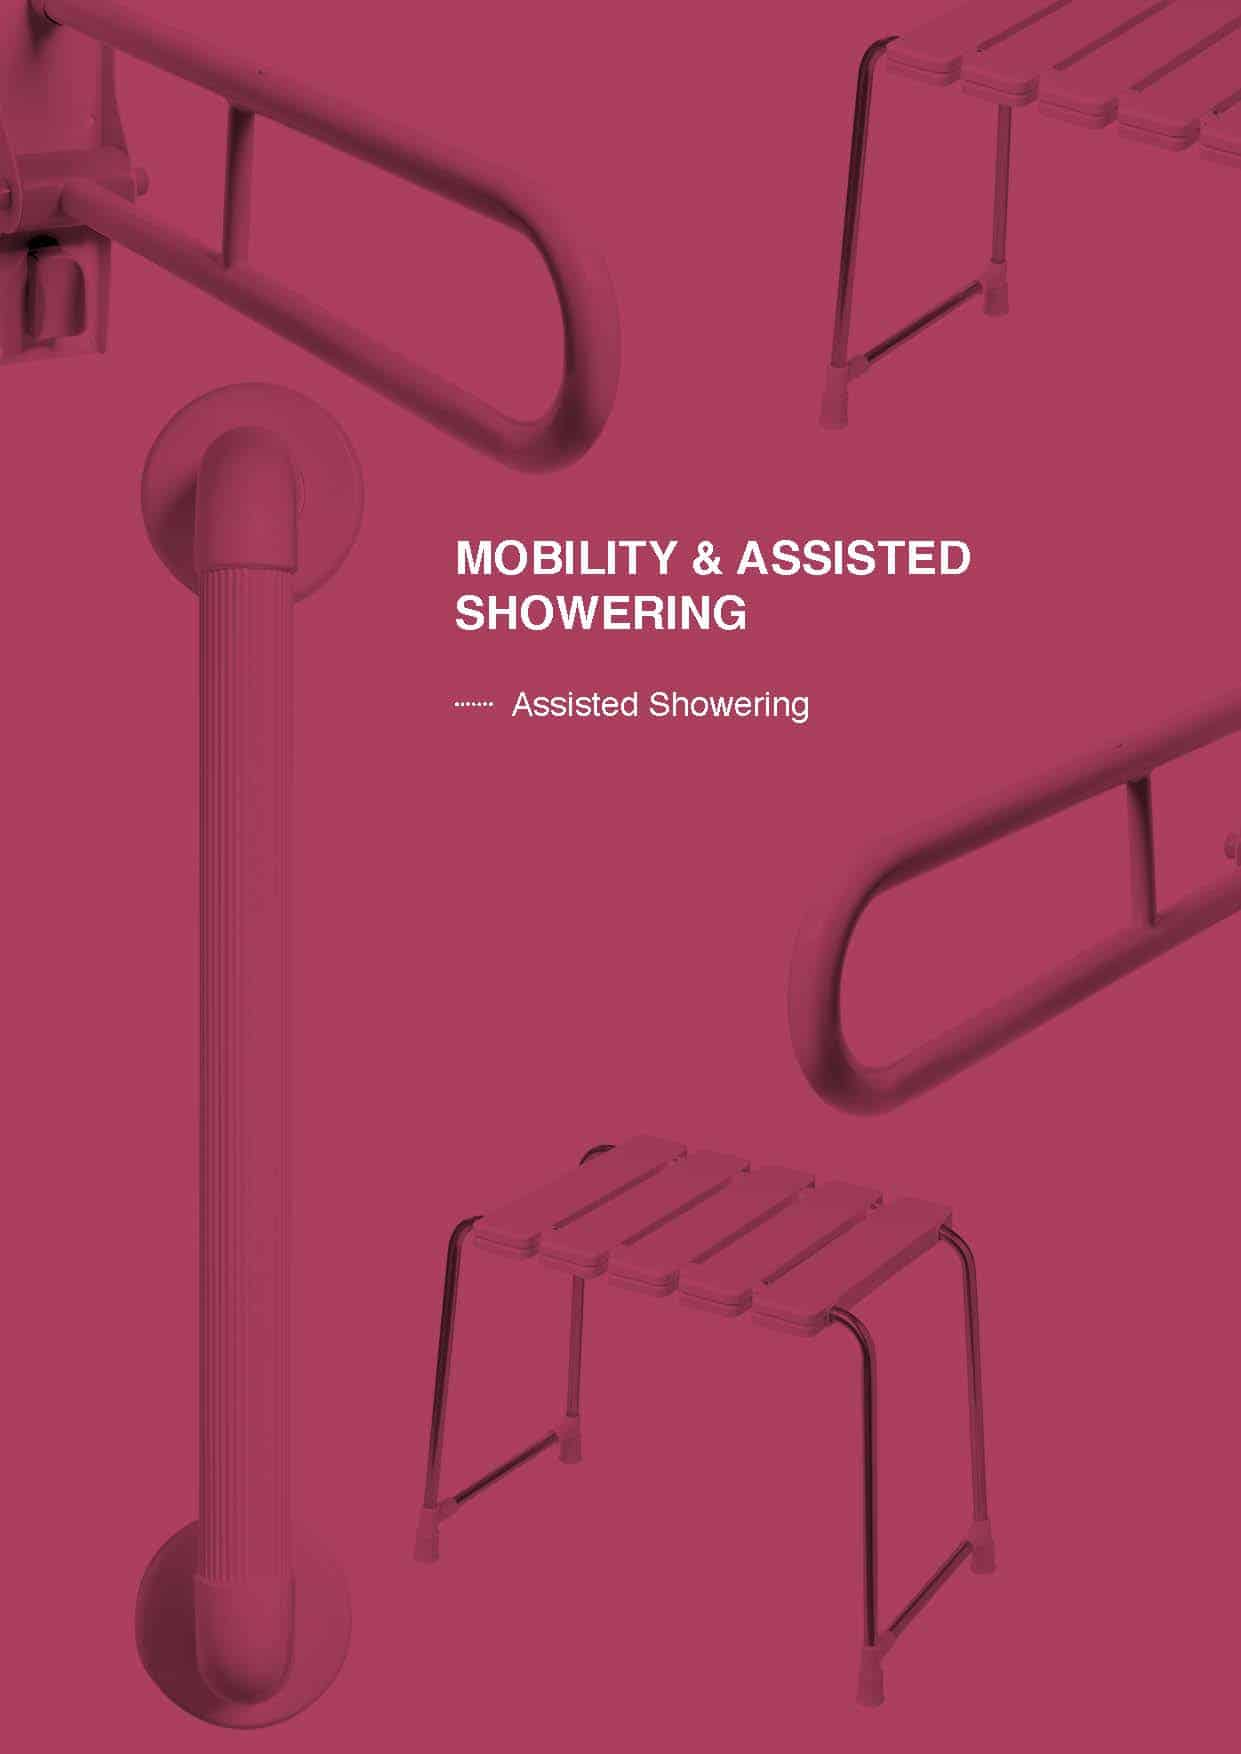 Mobility & Assisted Showering